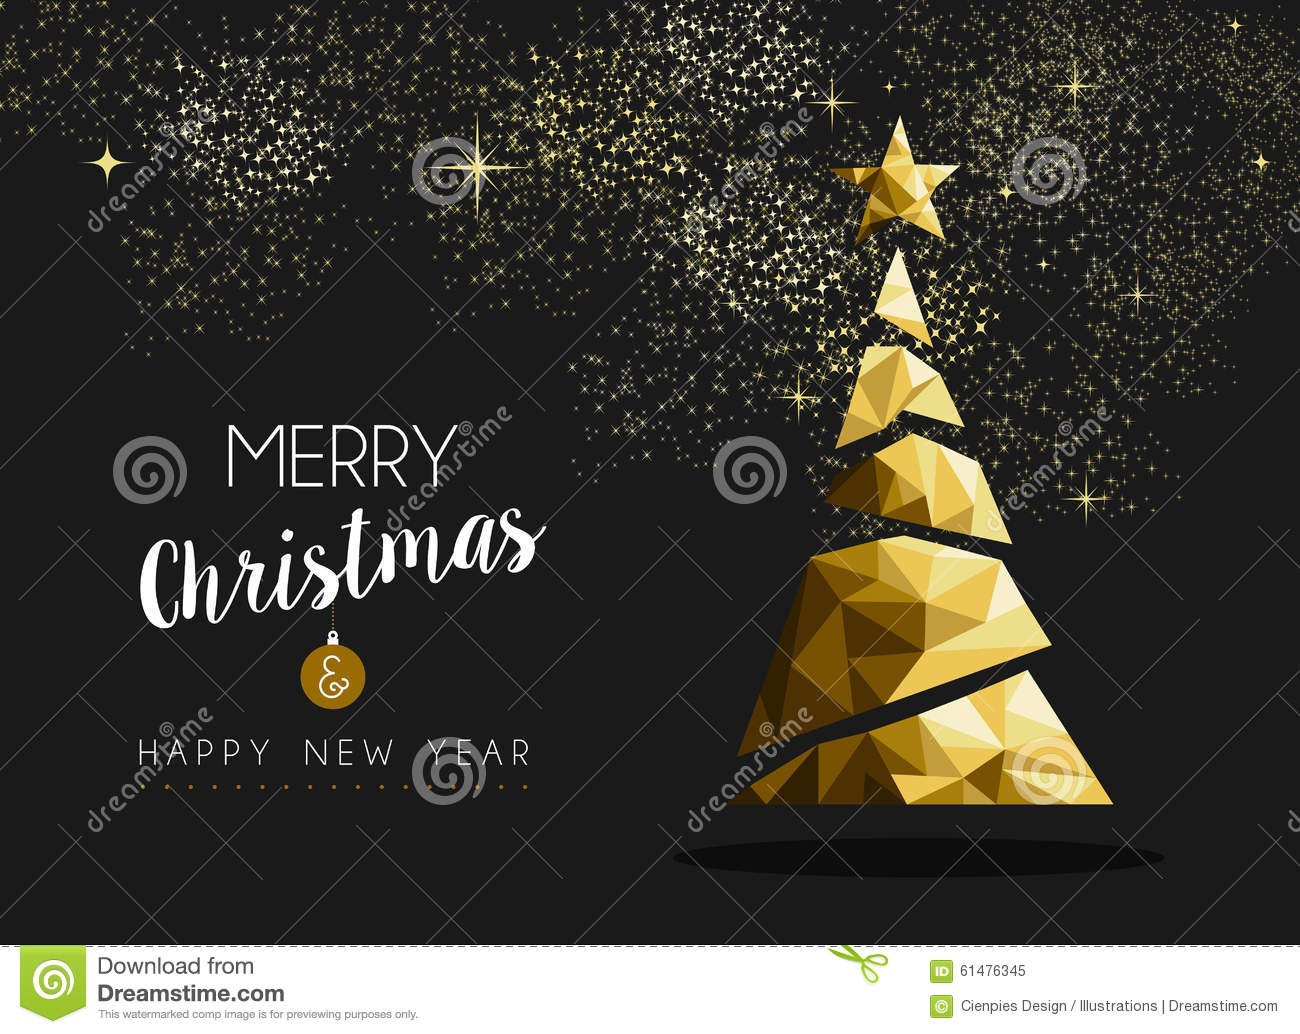 merry christmas happy new year golden triangle tree merry christmas and happy new year fancy